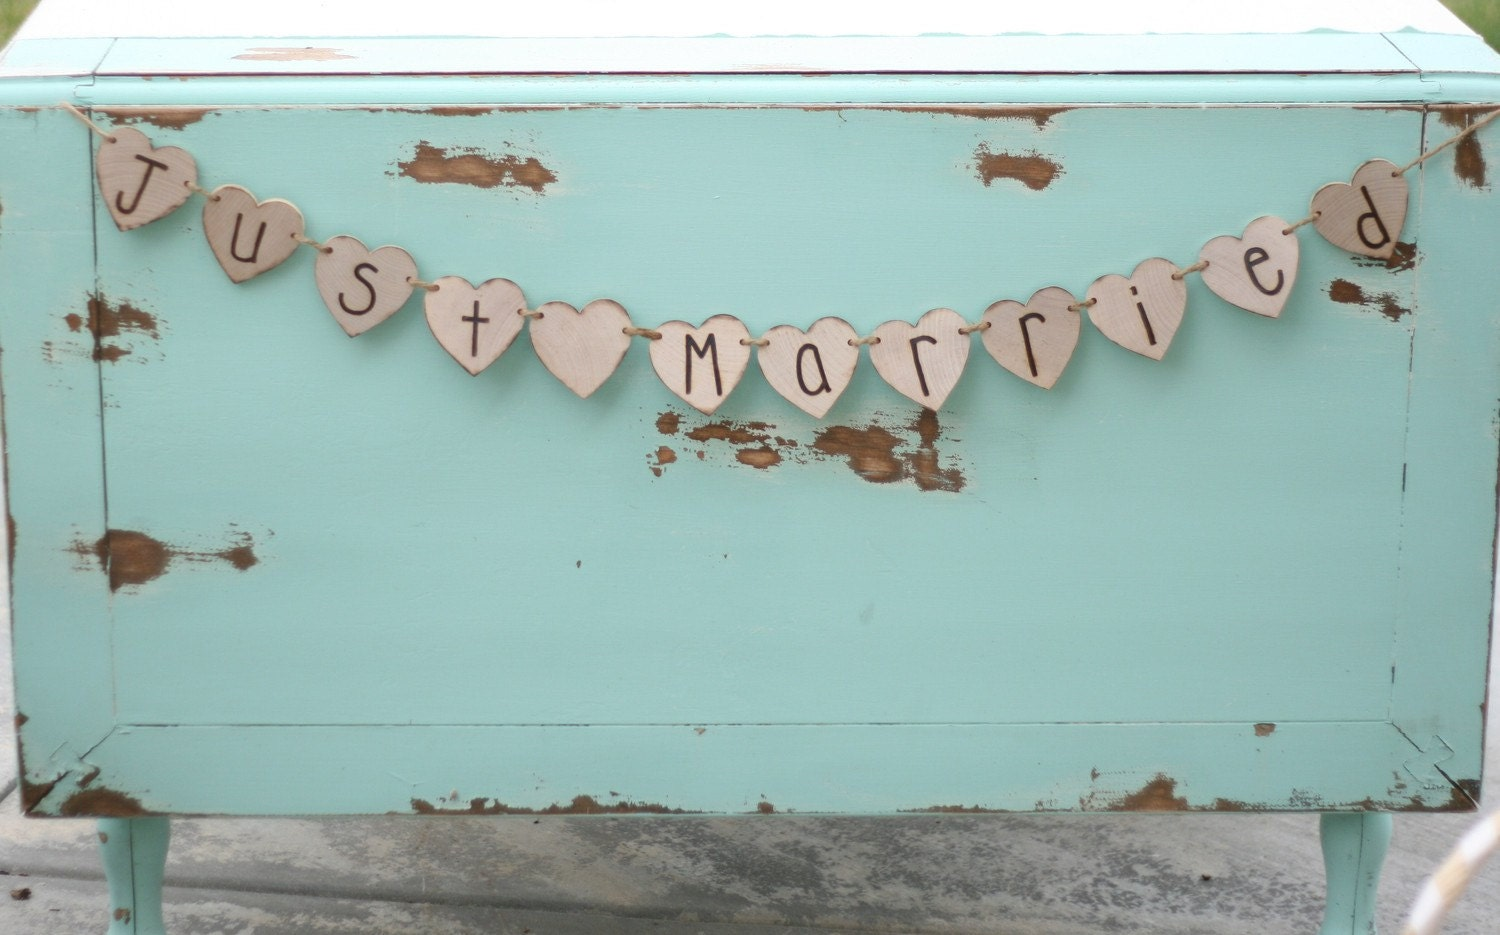 Woodland Southern Country Shabby Barn Chic Just Married Engraved Wood Banner Rustic Woodland Photo Prop Sign Lake Beach Cottage CHIC Reception Table Decoration